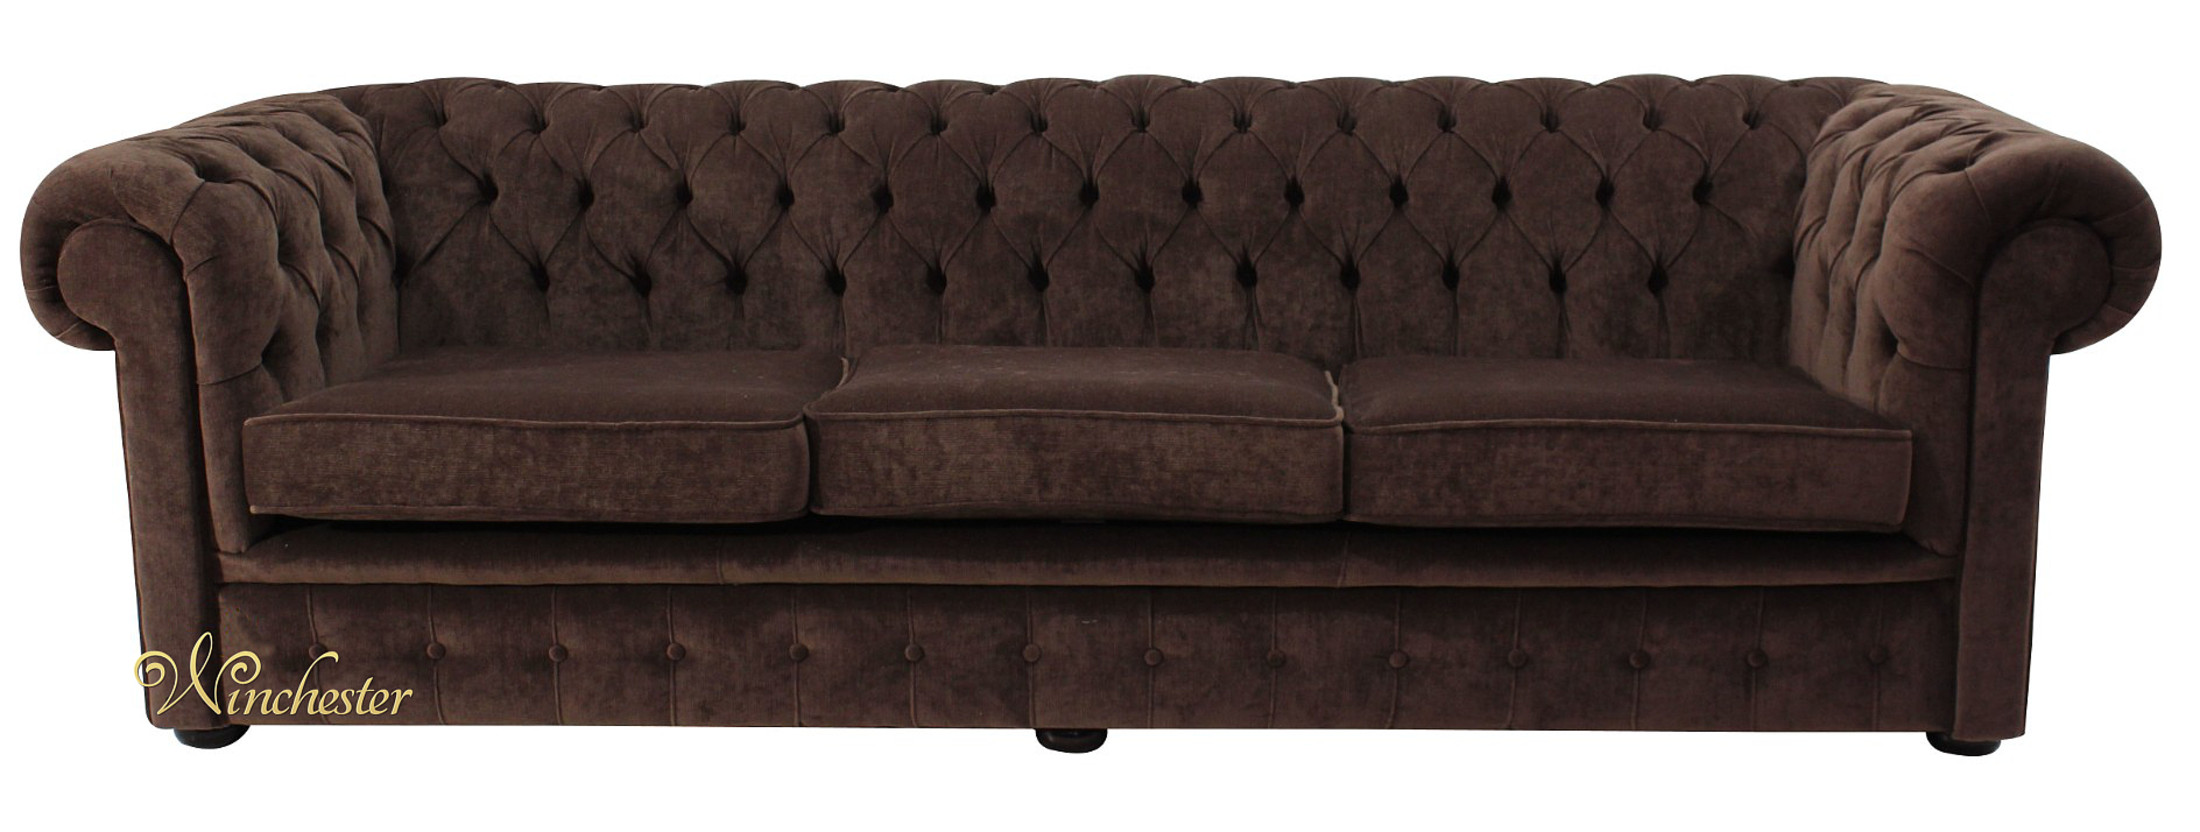 brown fabric sofa ashley axiom leather reviews chesterfield 4 seater settee pimlico chocolate offer thomas wc